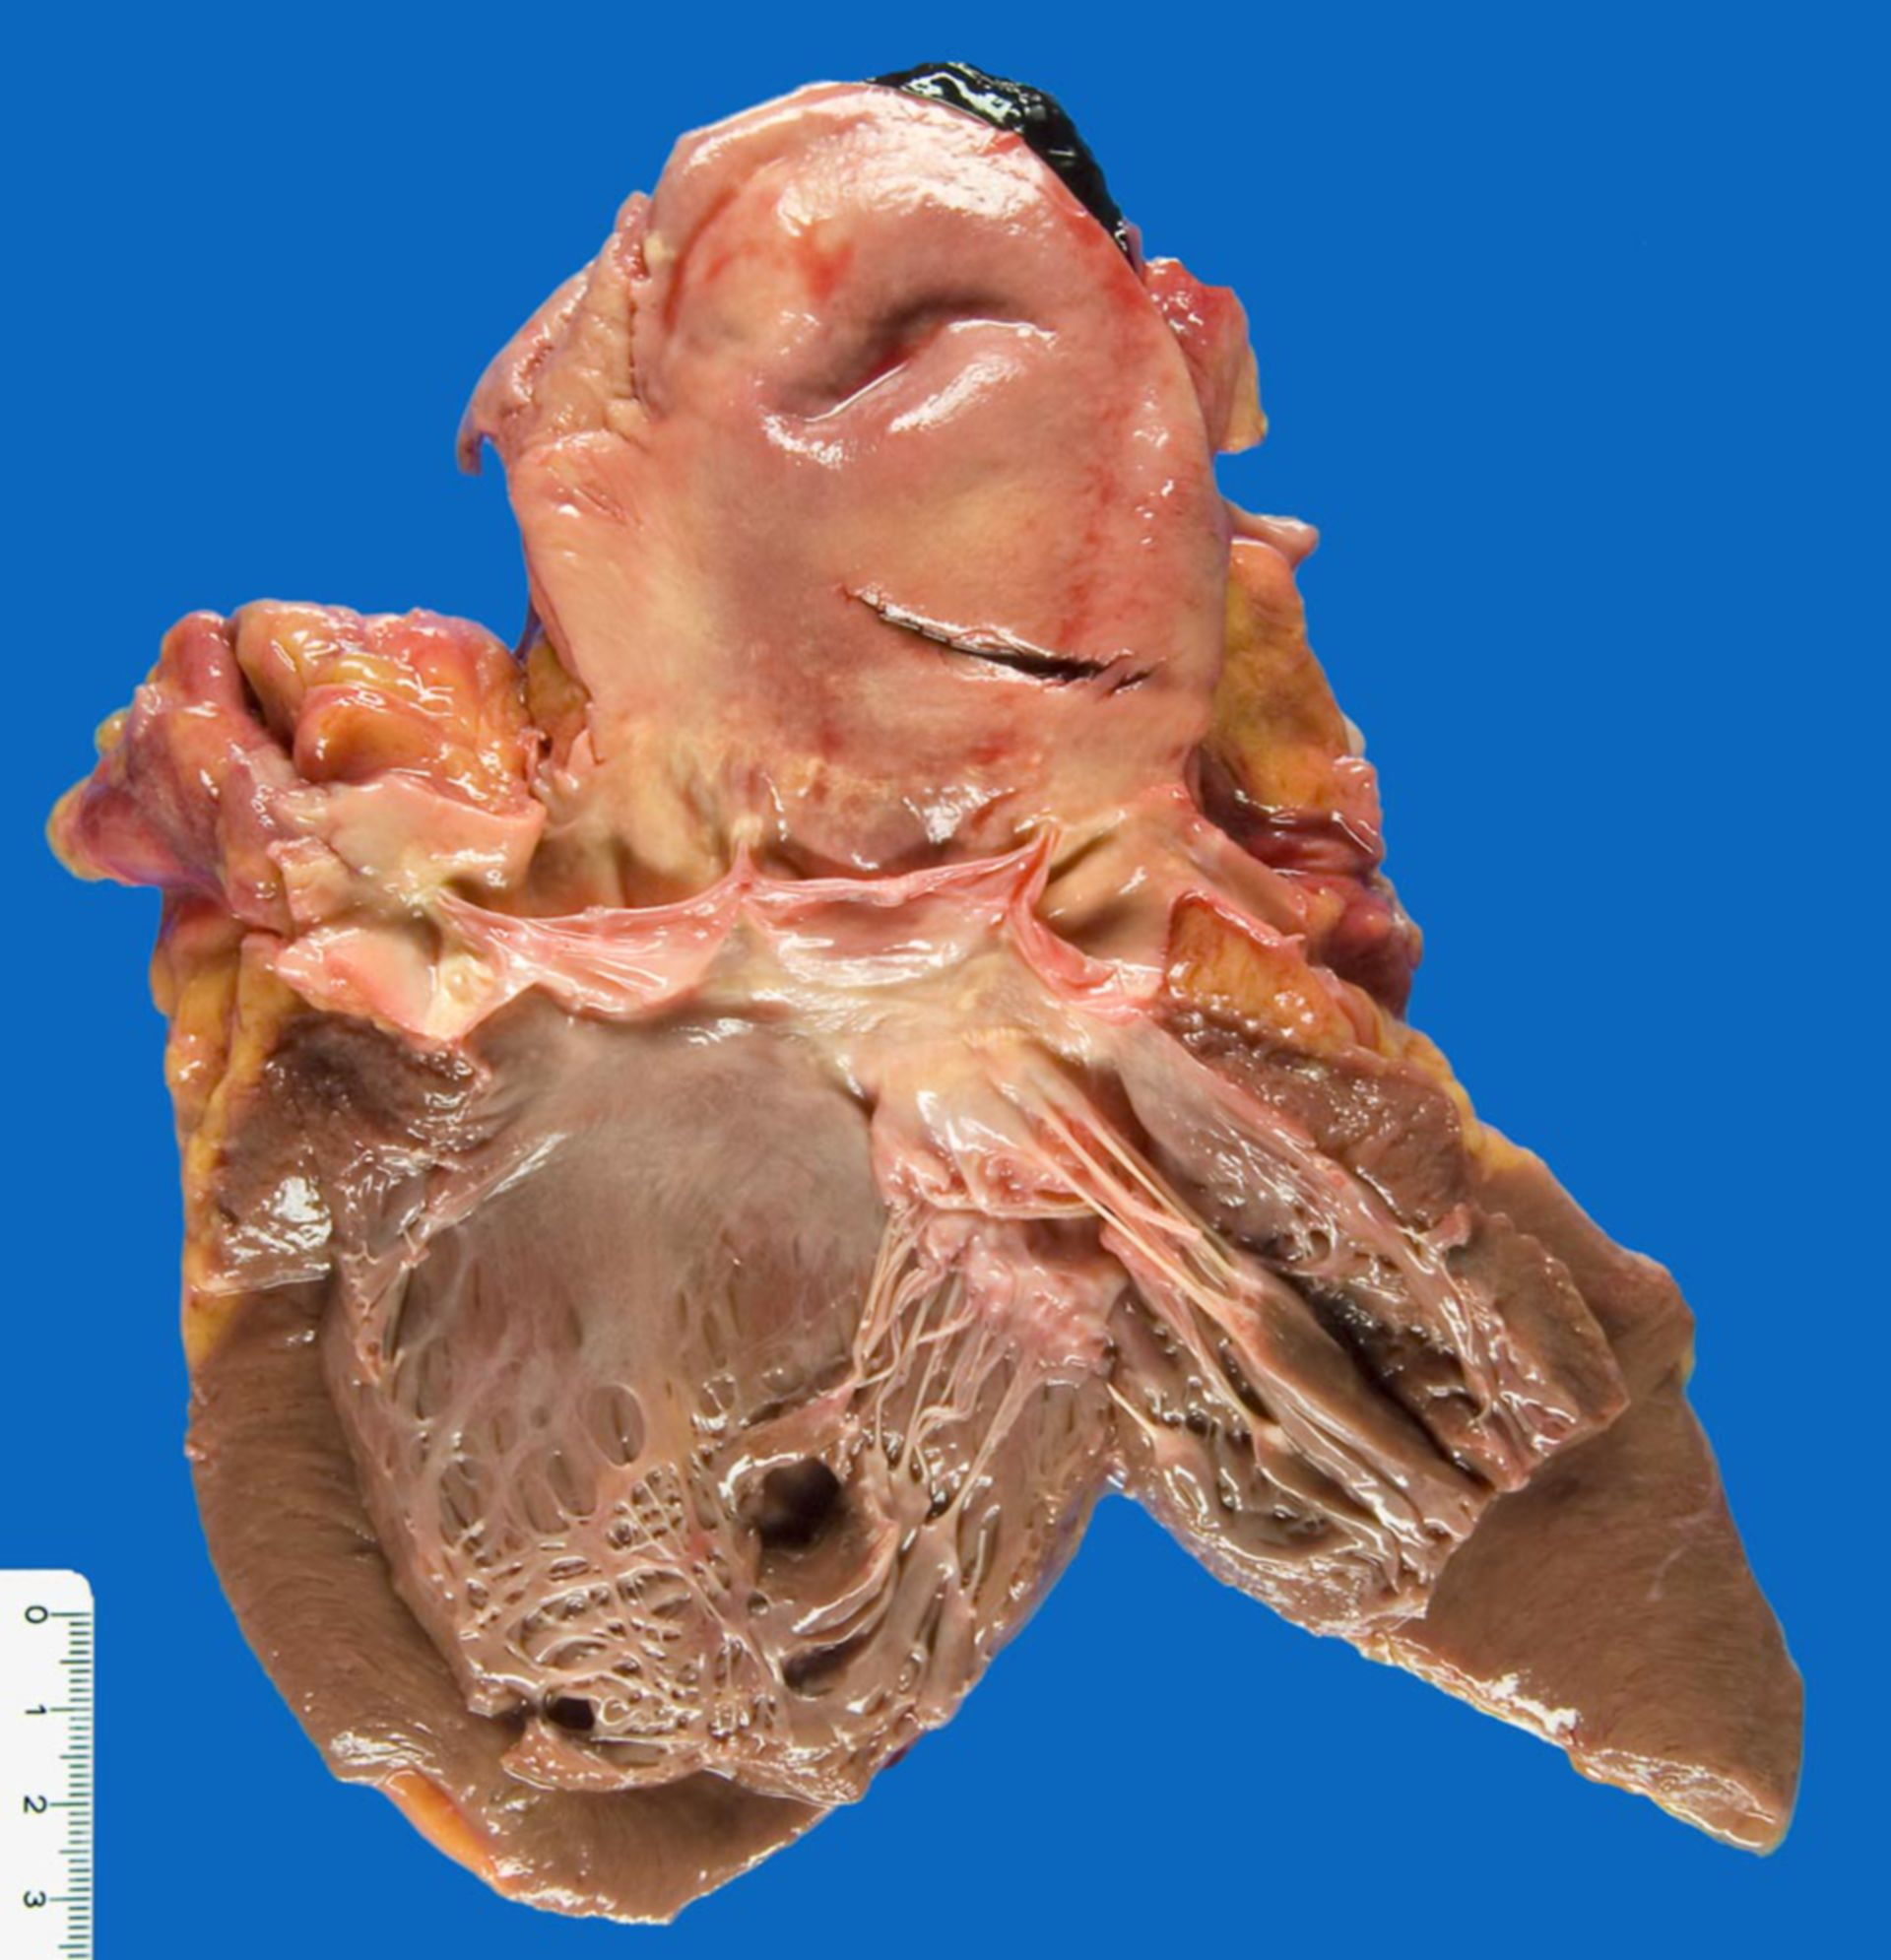 Fresh dissection of the Aorta ascendens, ripped intima